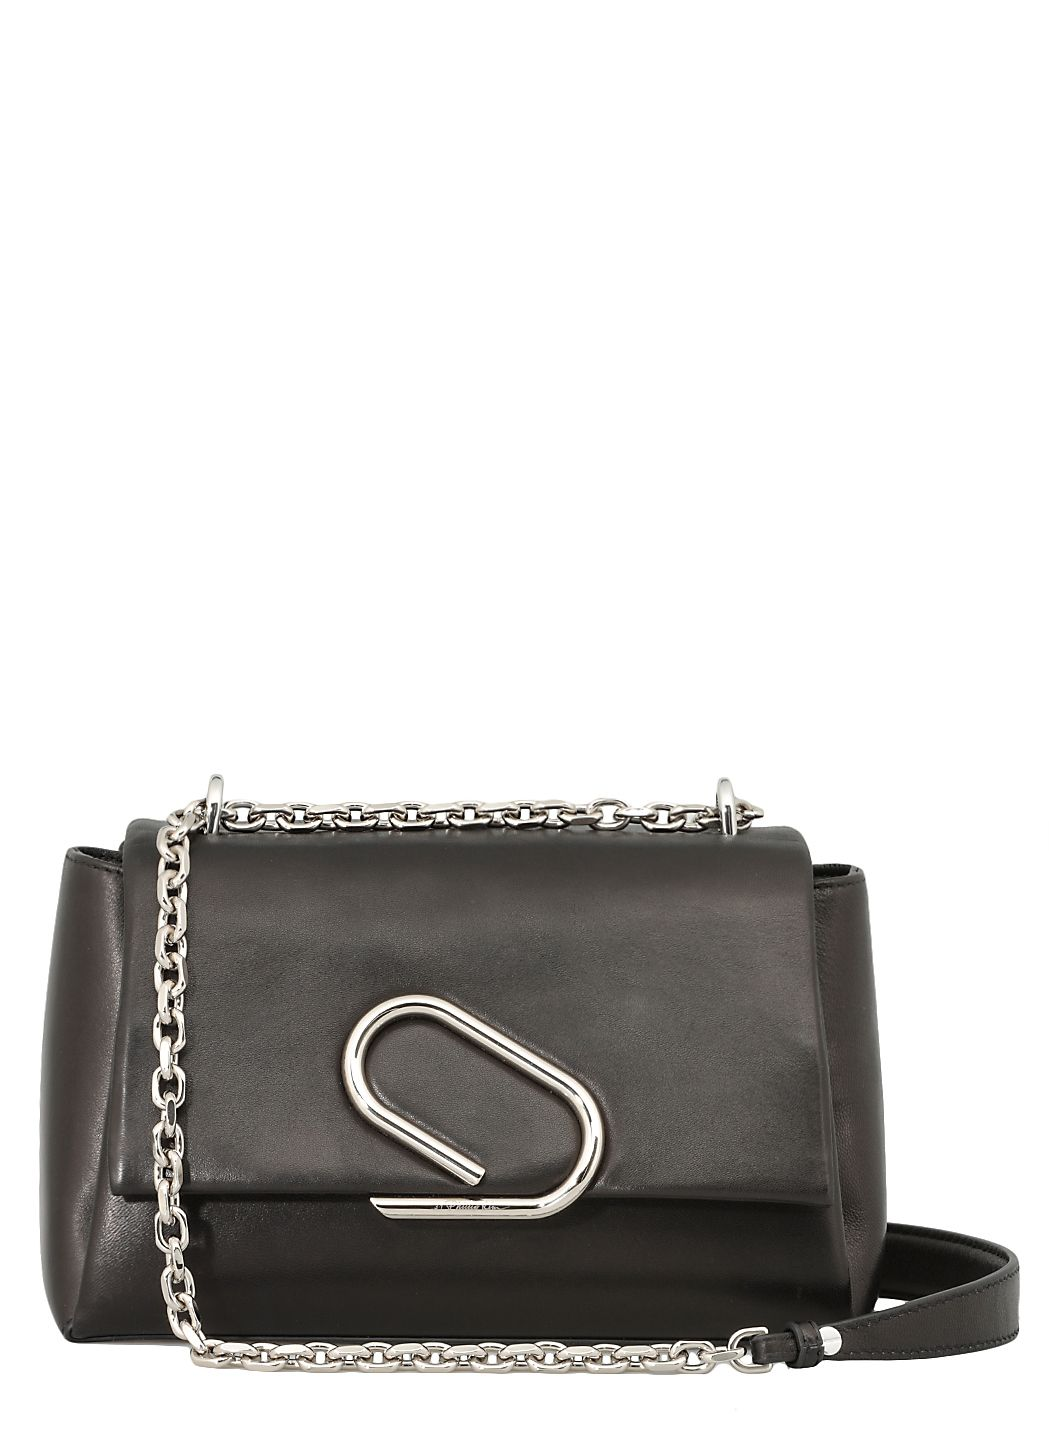 Alix soft chain shoulder bag